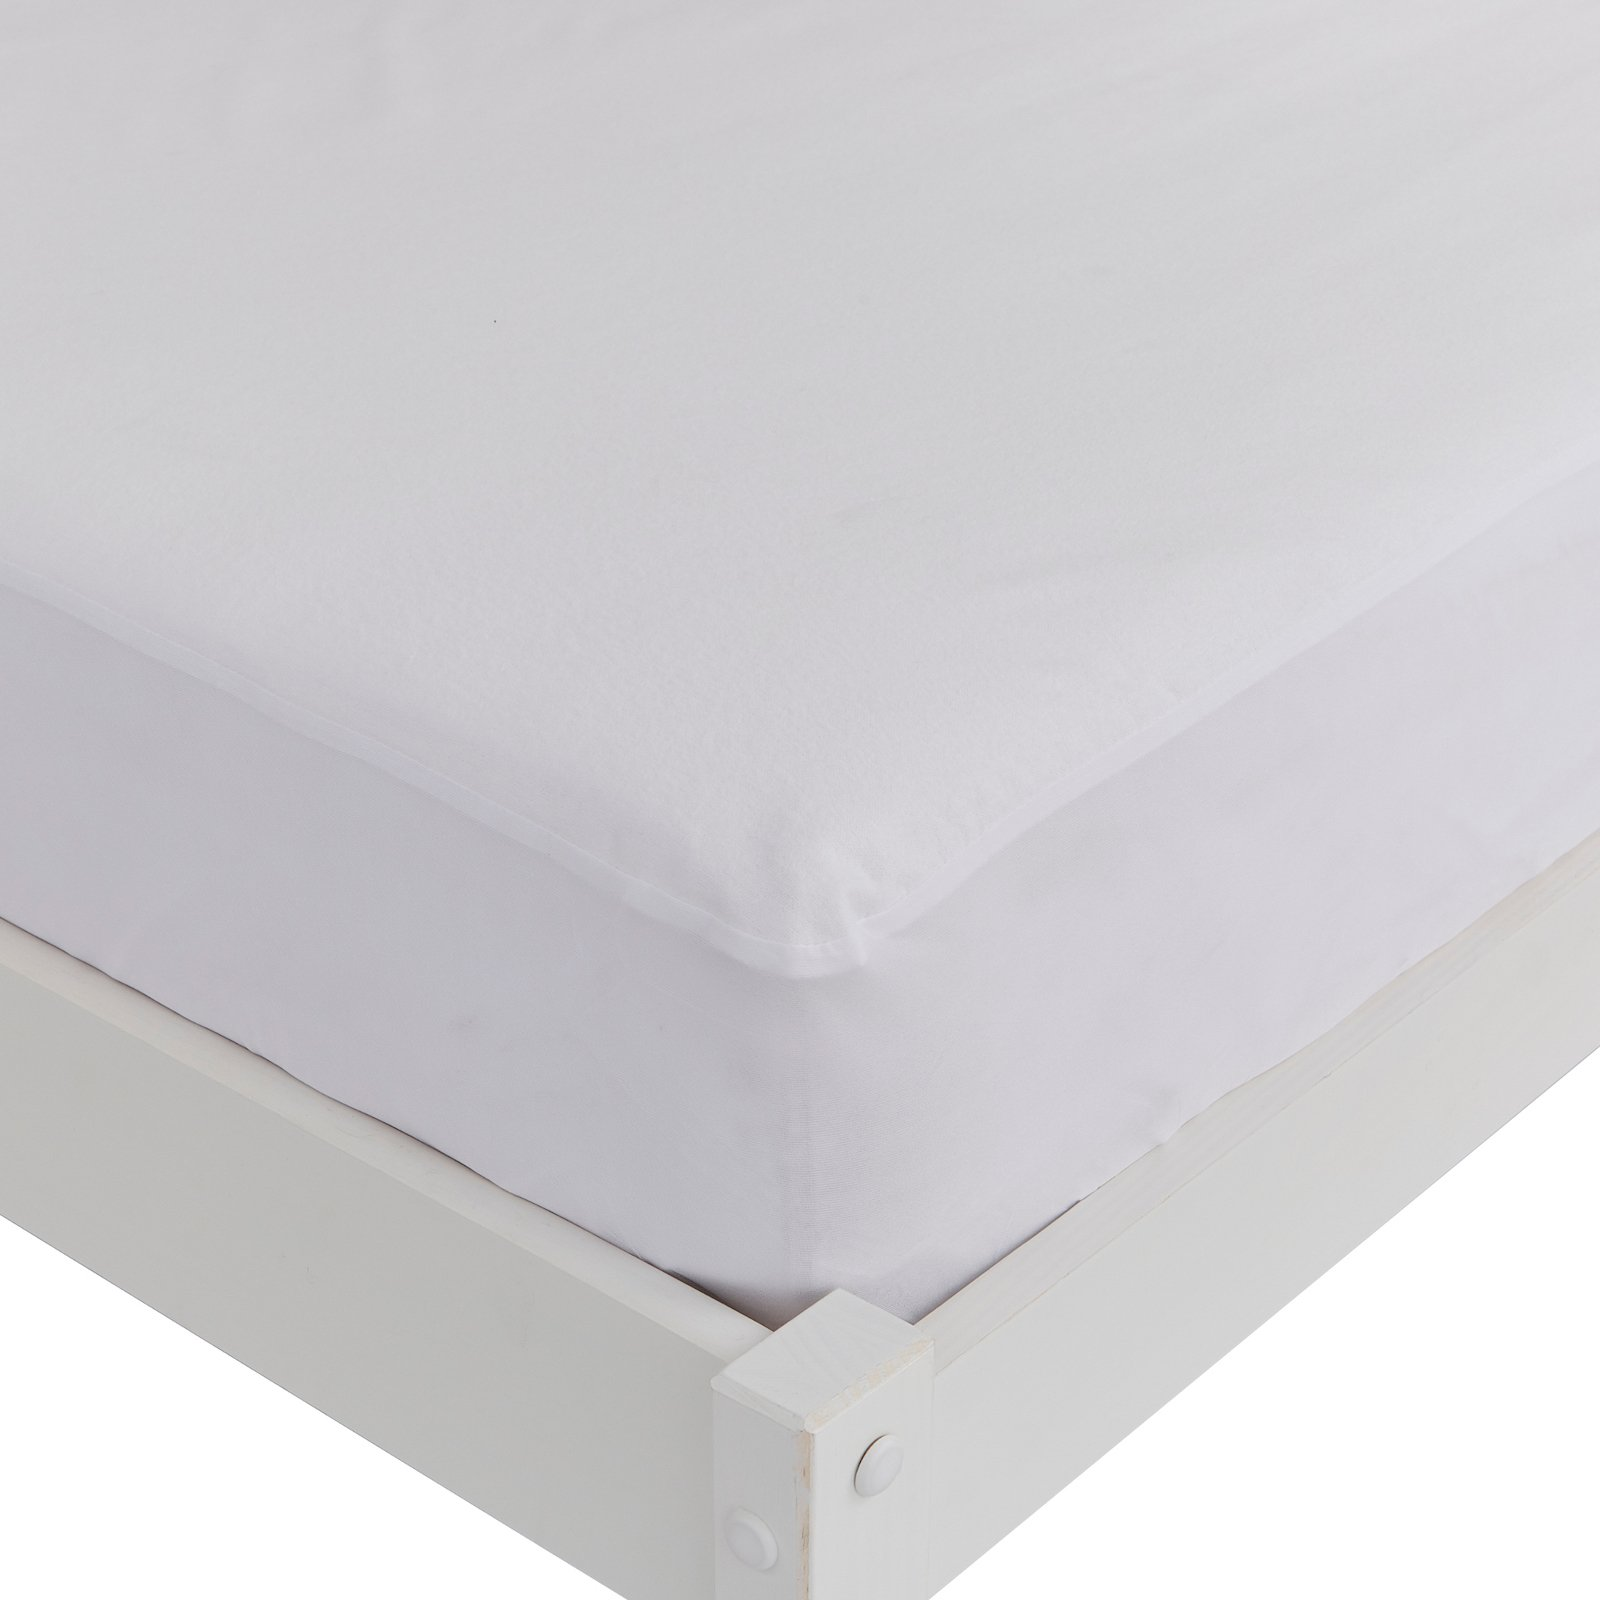 Super King Size Waterproof Mattress Protector Kylie Waterproof Super King Size Mattress Protector